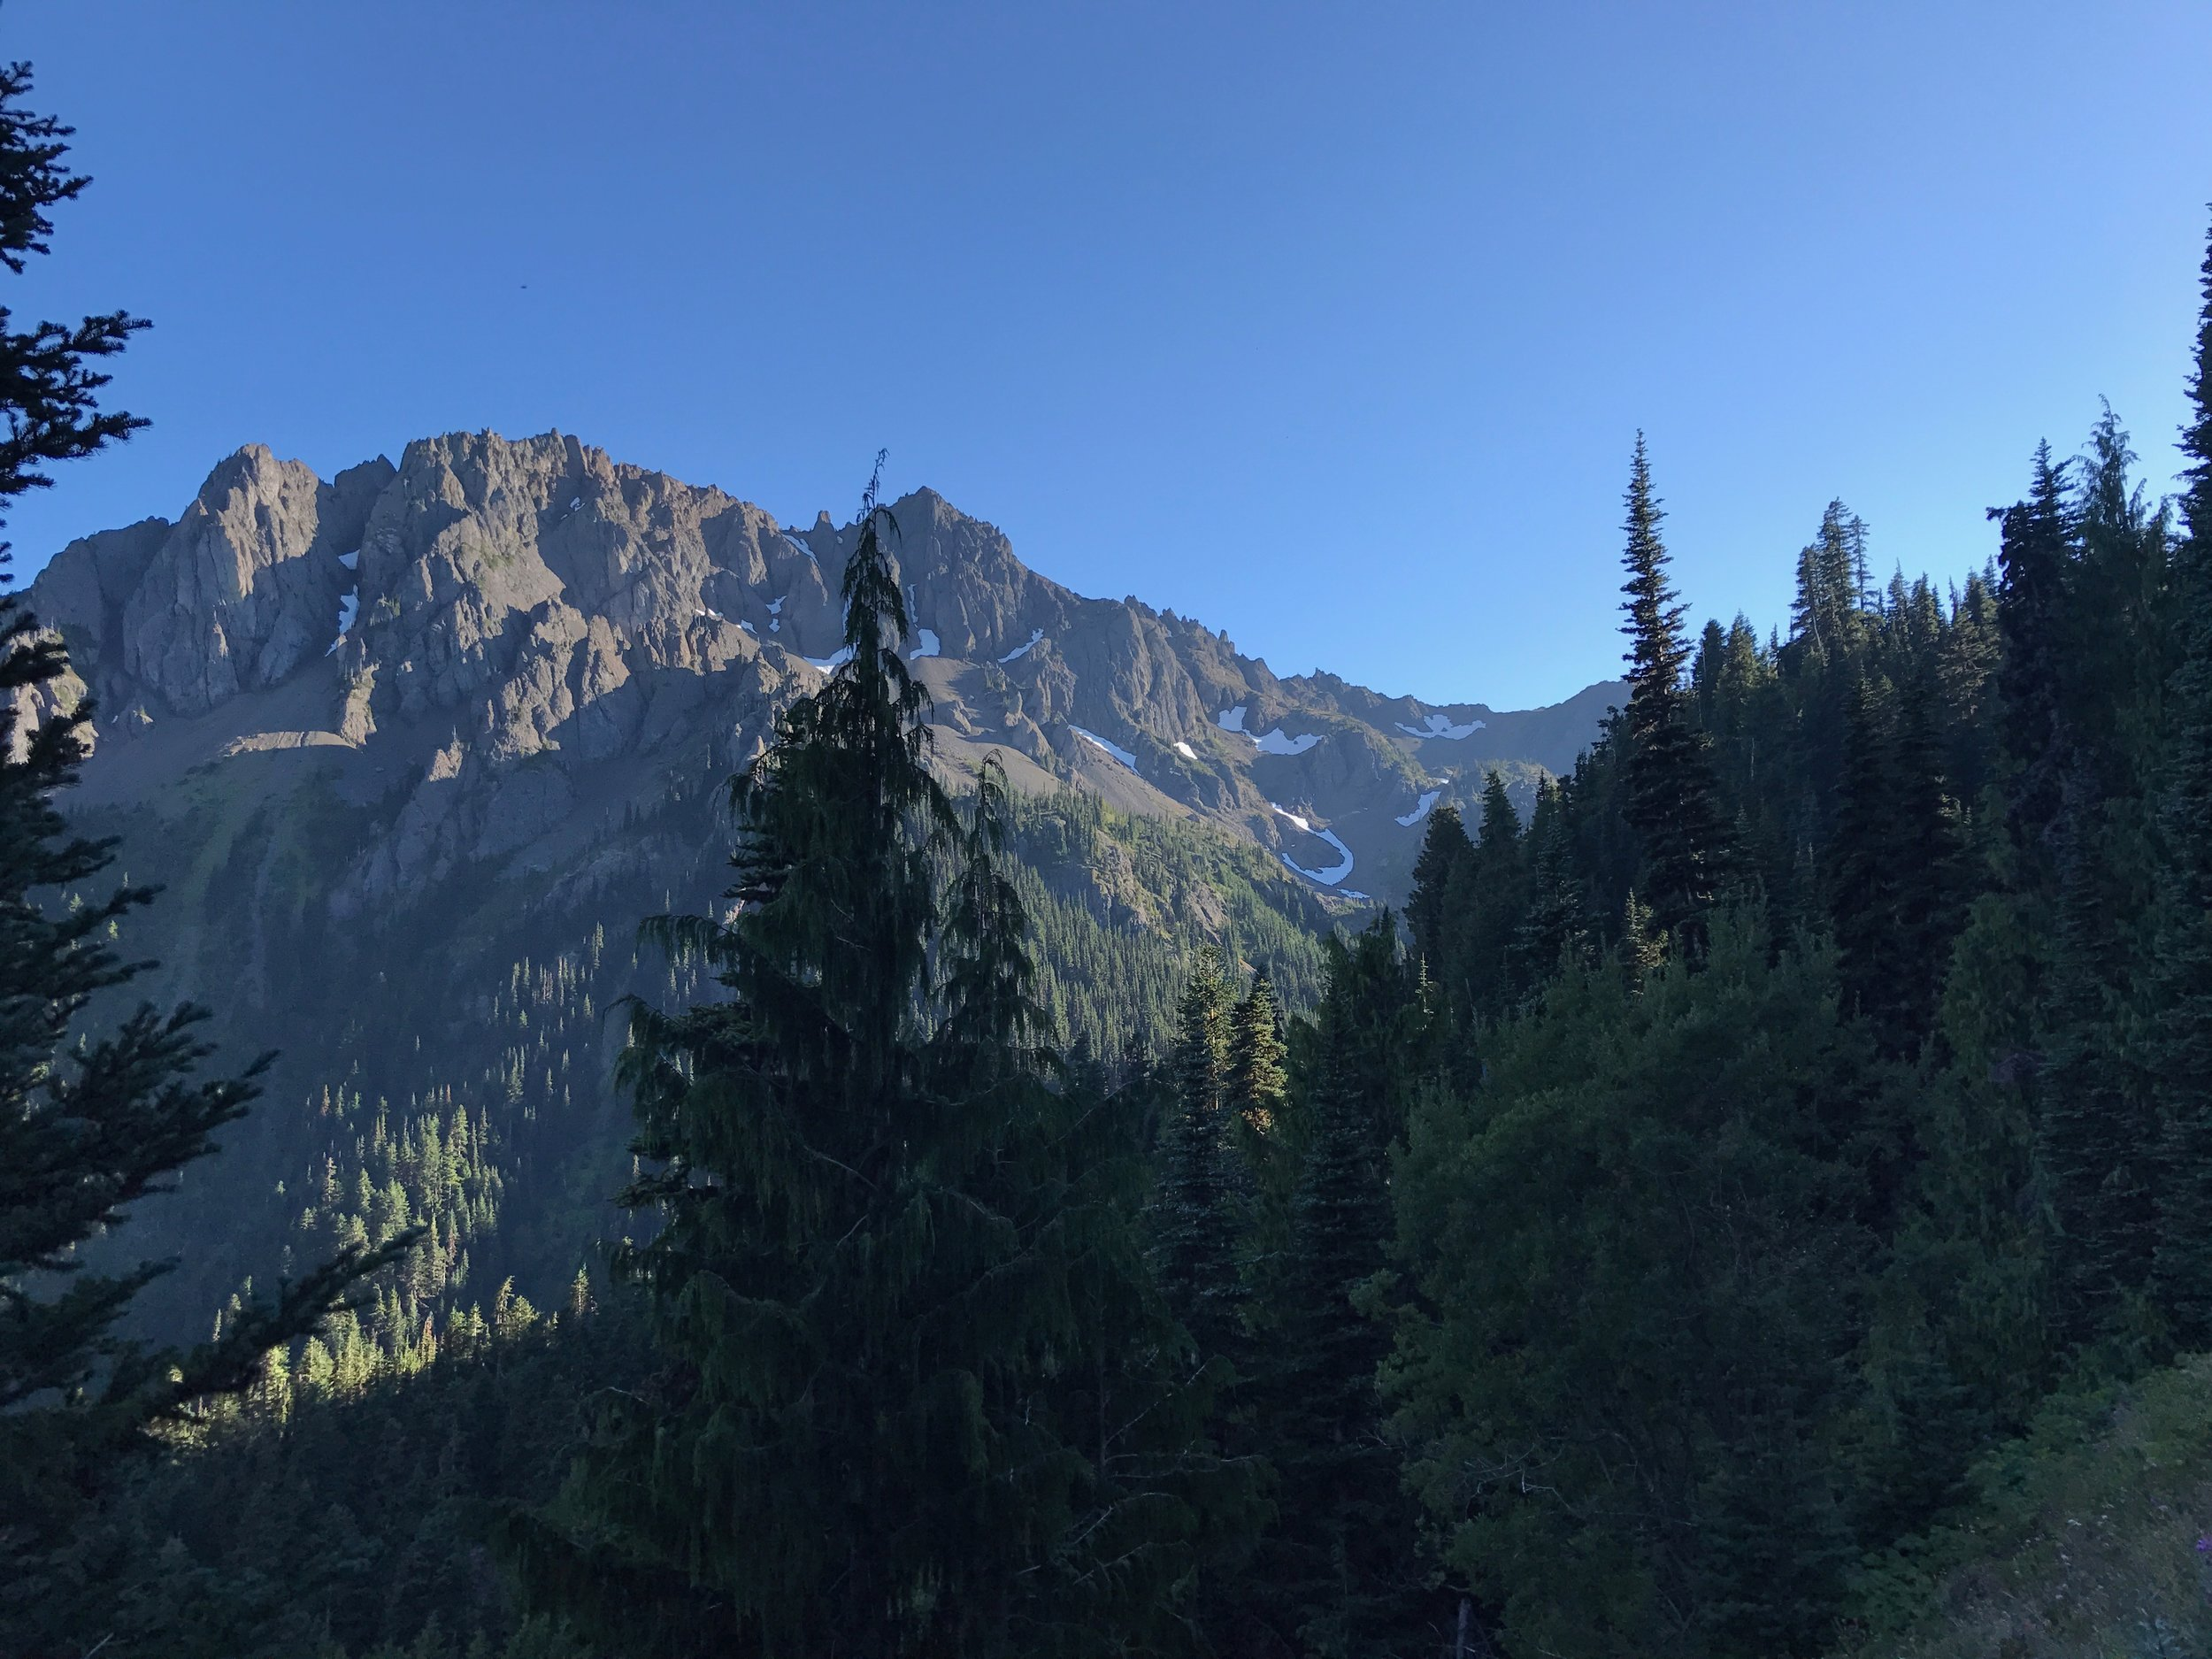 The view we enjoyed on the way to Marmot Pass.